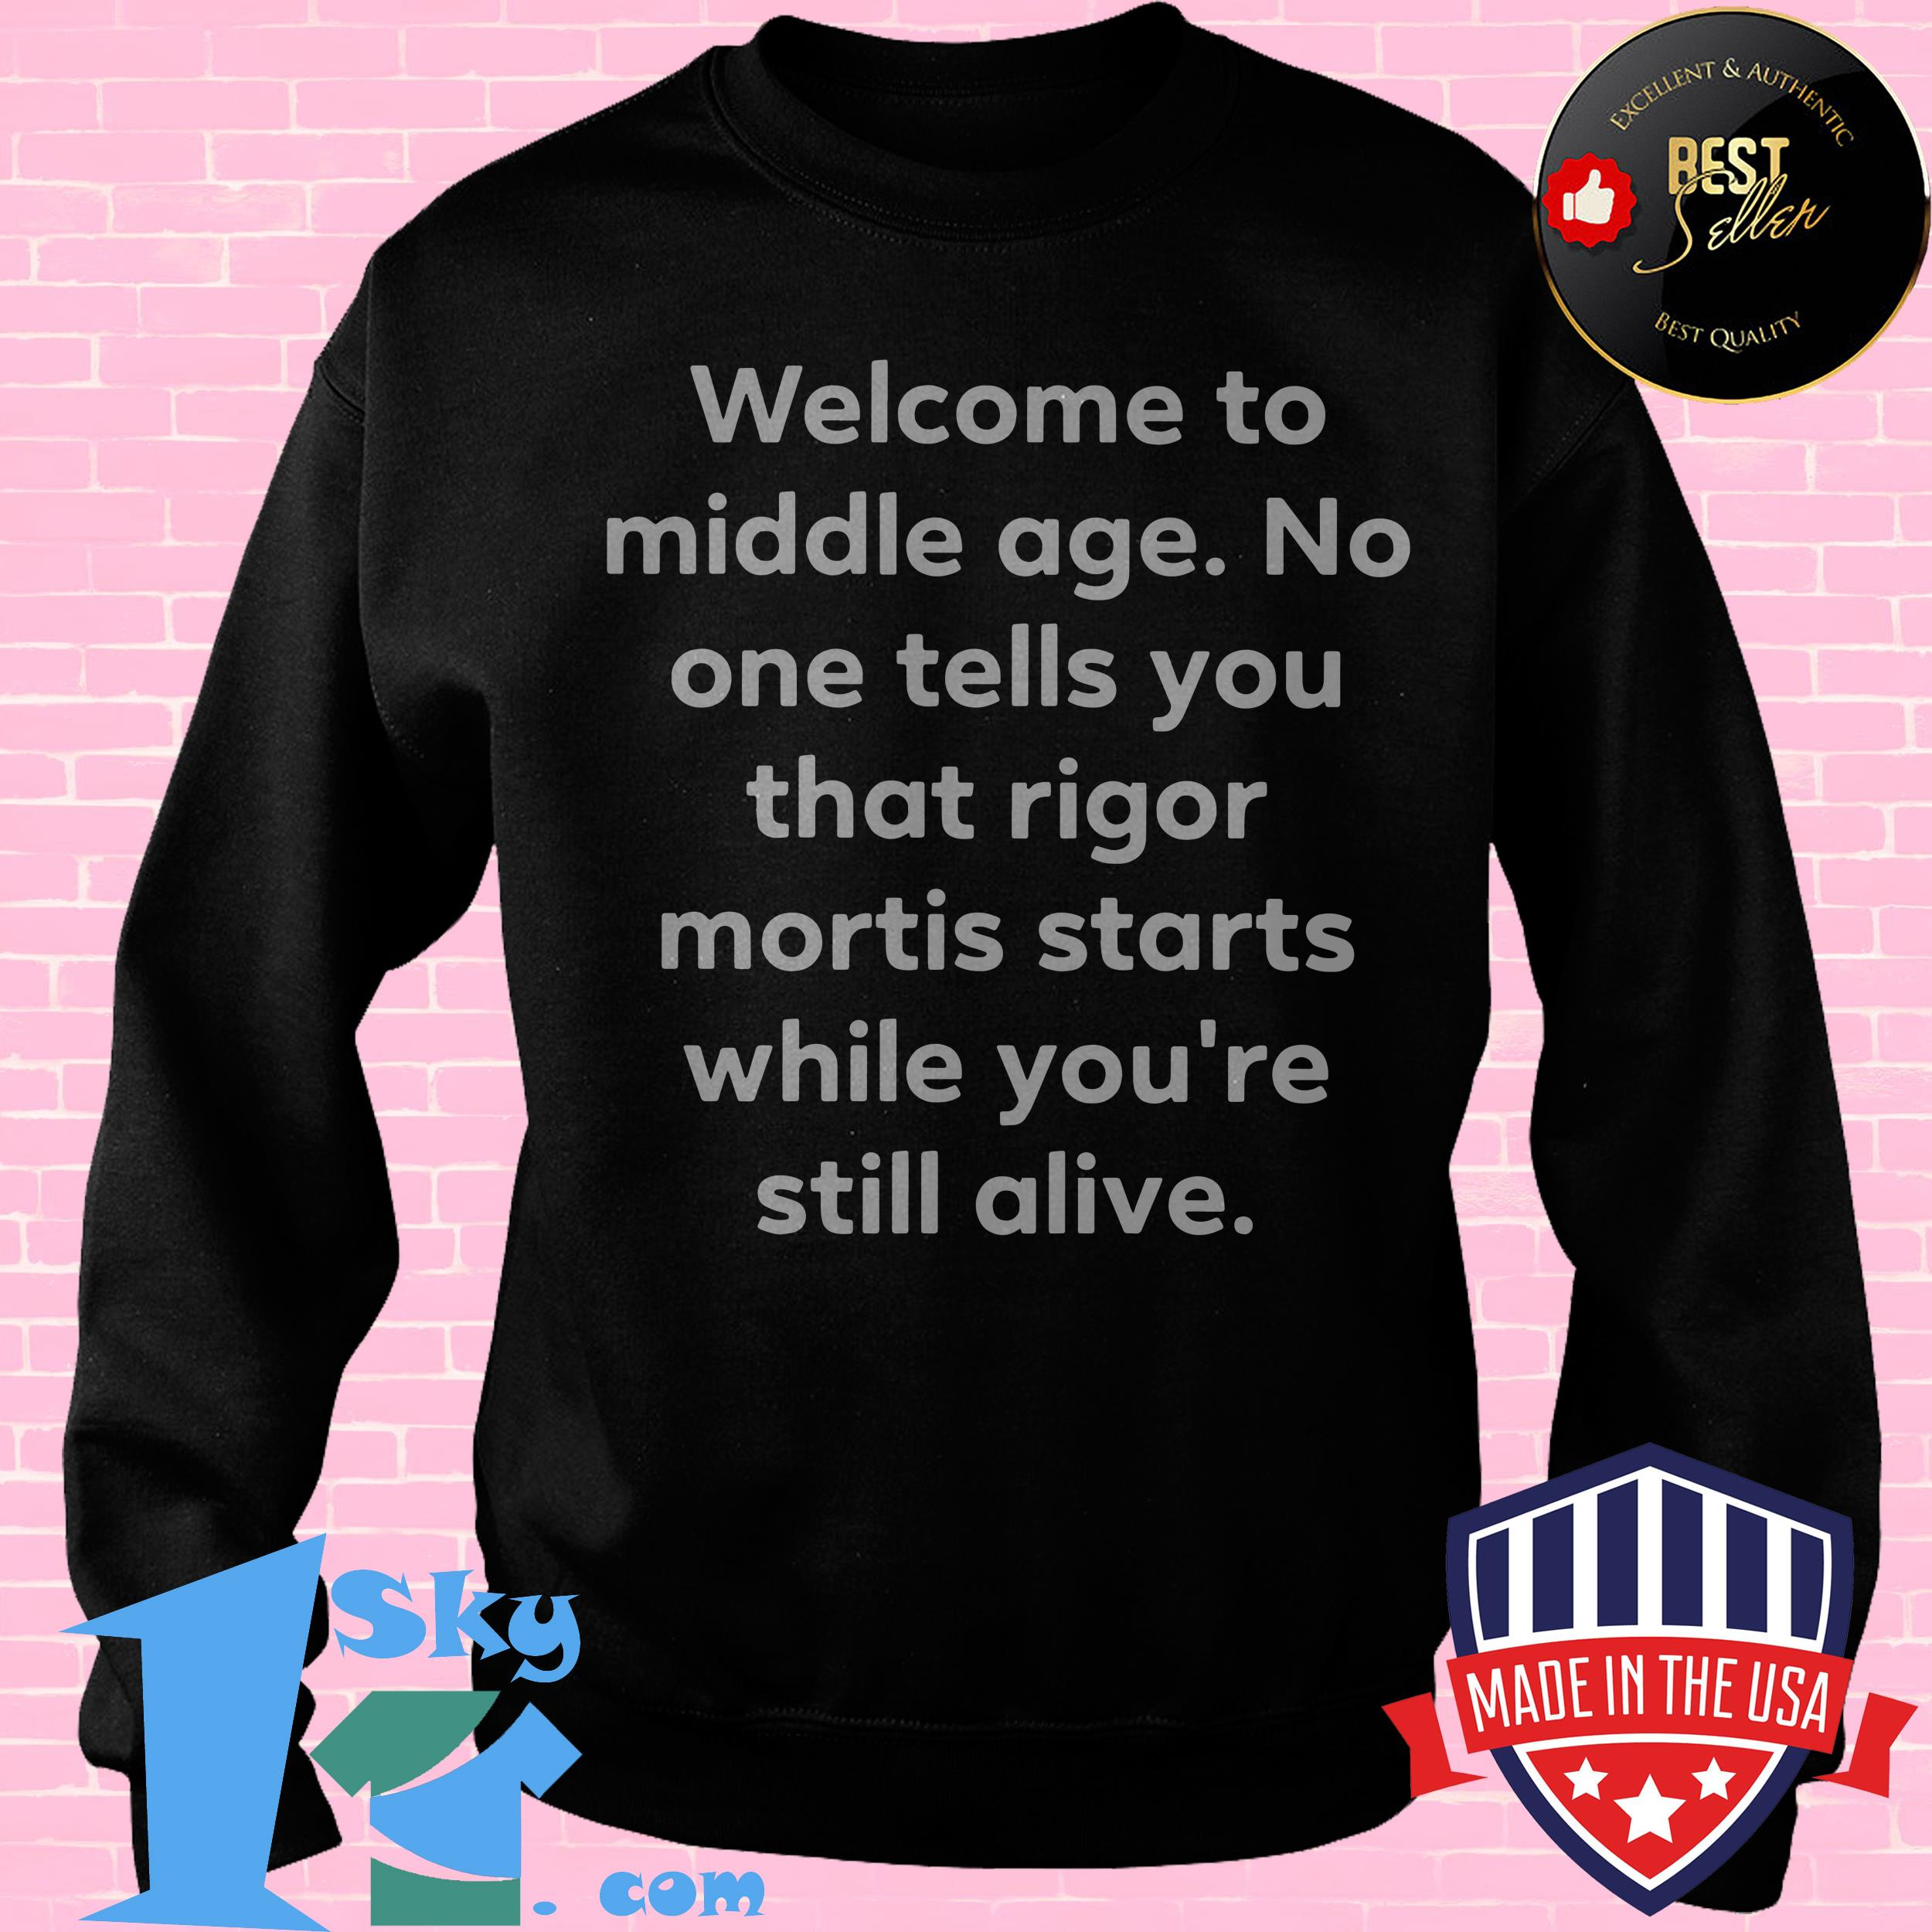 welcome to middle age no one tells you that rigor mortis starts while youre still alive sweatshirt - Welcome to Middle Age No One Tells You That Rigor Mortis Starts While You're Still Alive shirt